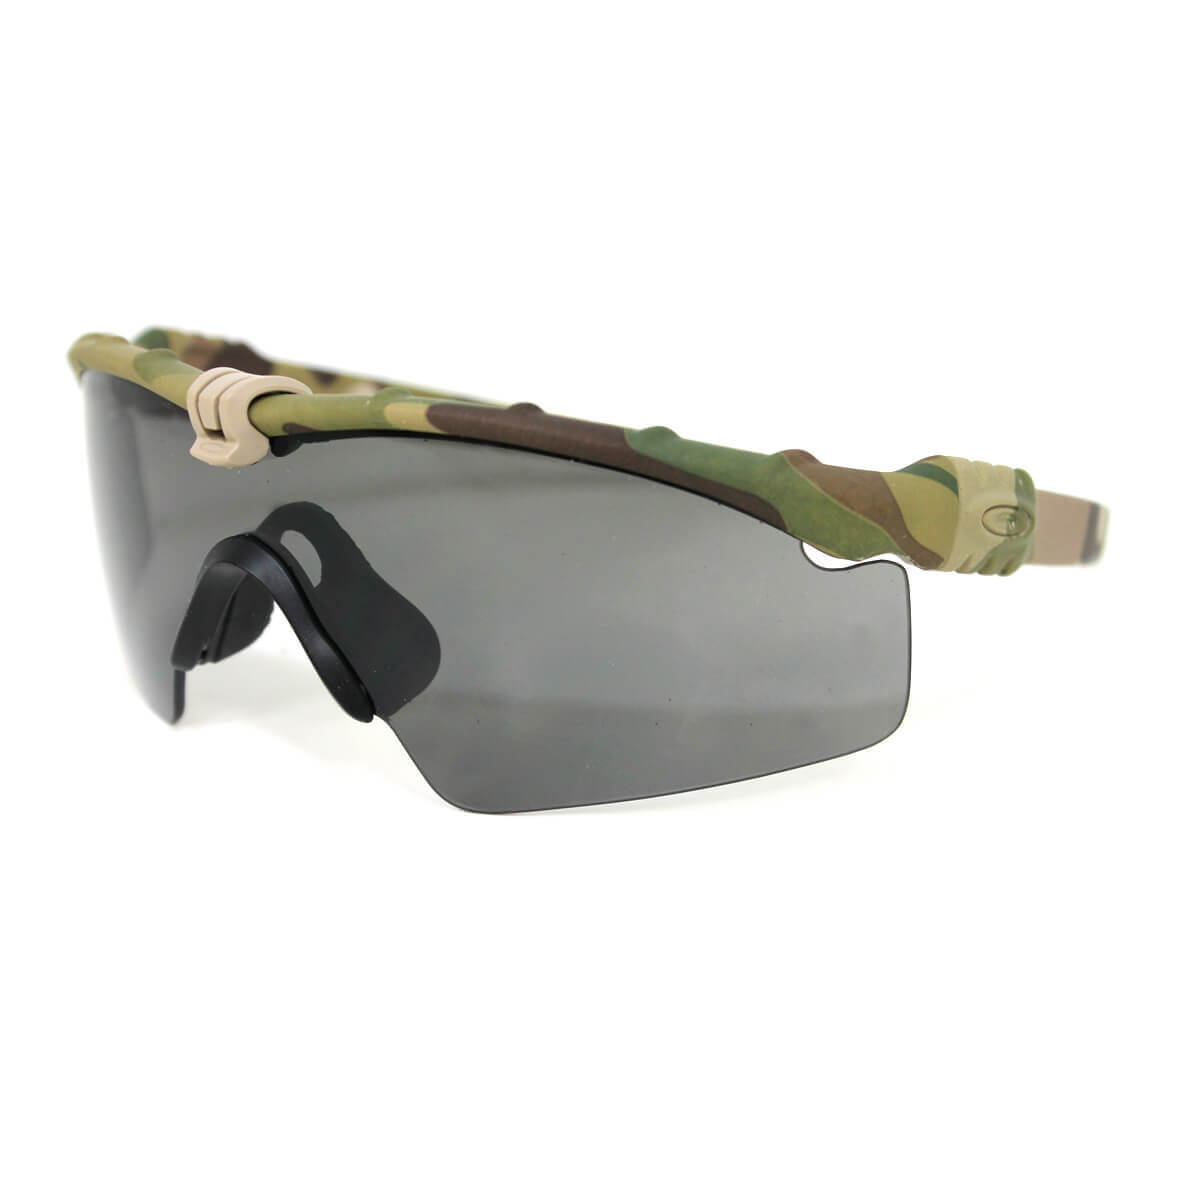 Oakley SI M Frame 3.0 Glasses MultiCam Grey - Shoot Straight